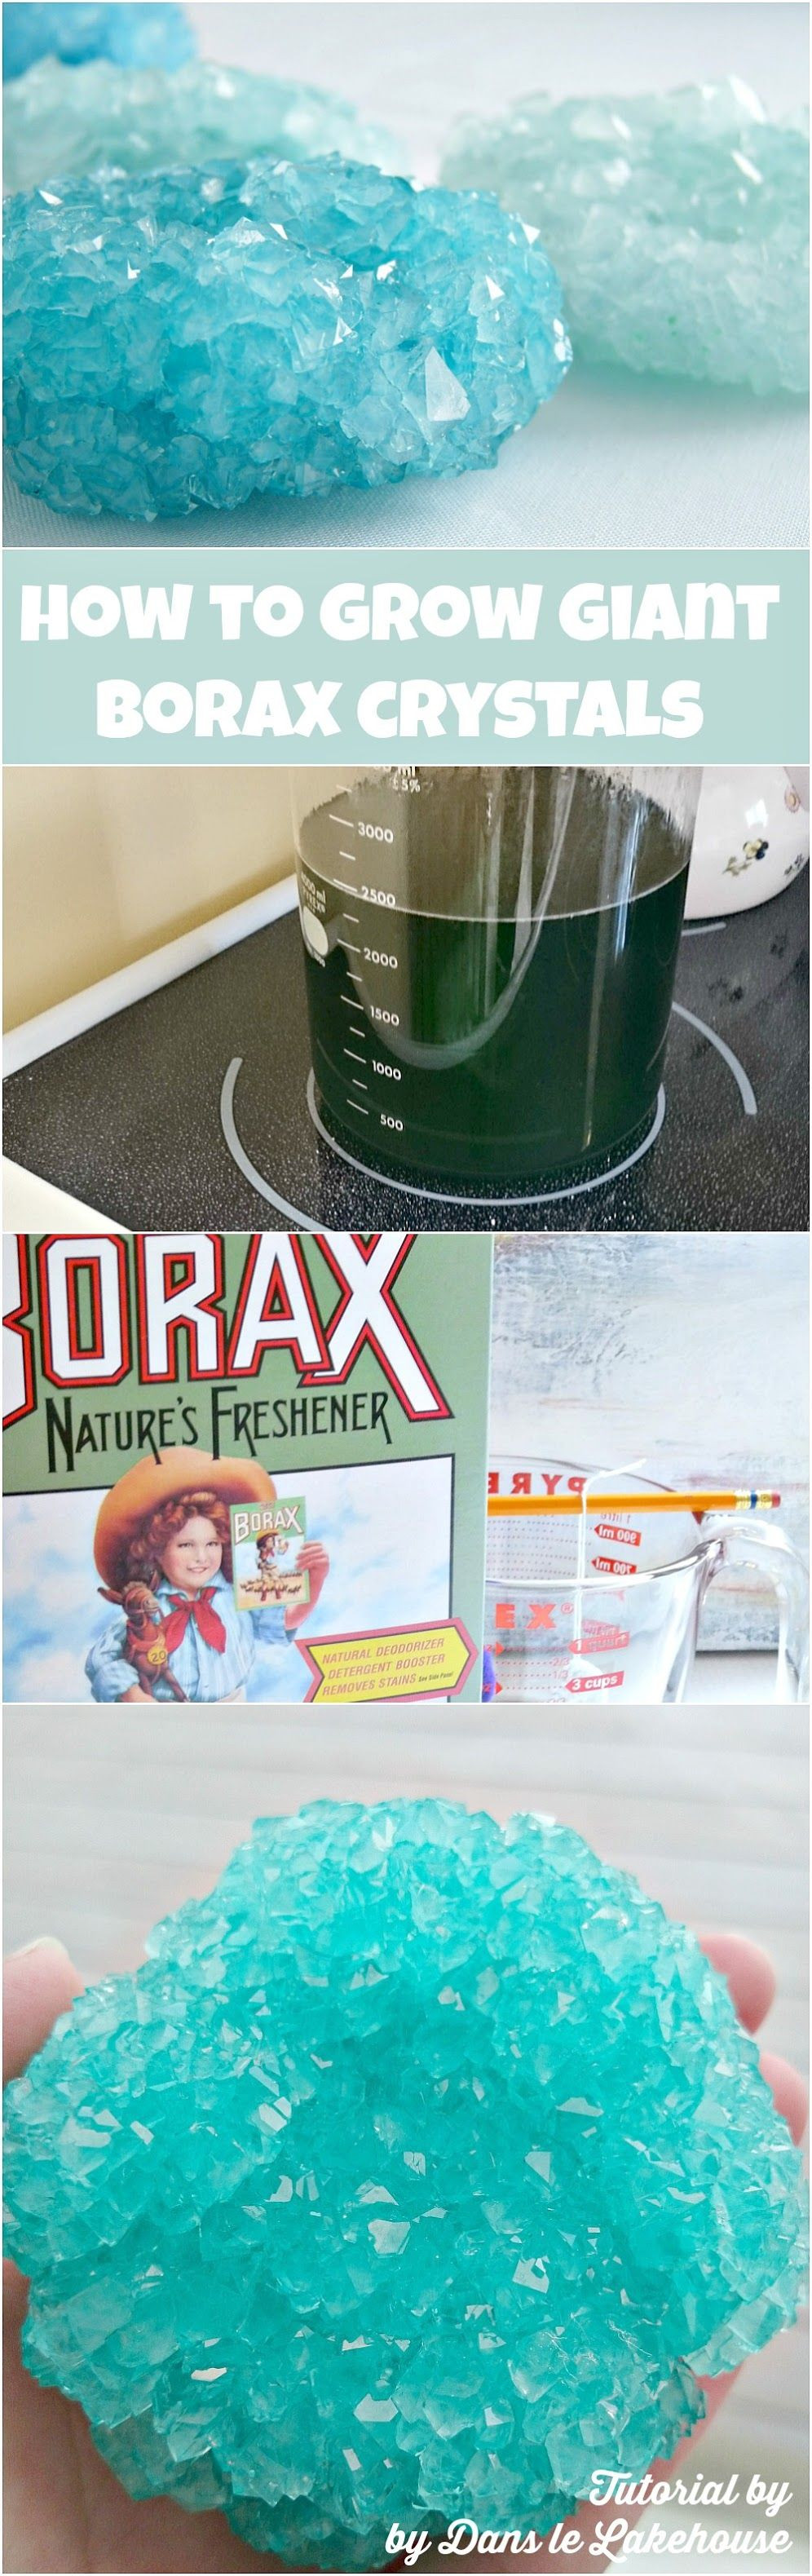 Best ideas about DIY Science Projects For Adults . Save or Pin Borax Crystals How to Grow Giant DIY Borax Crystals Now.